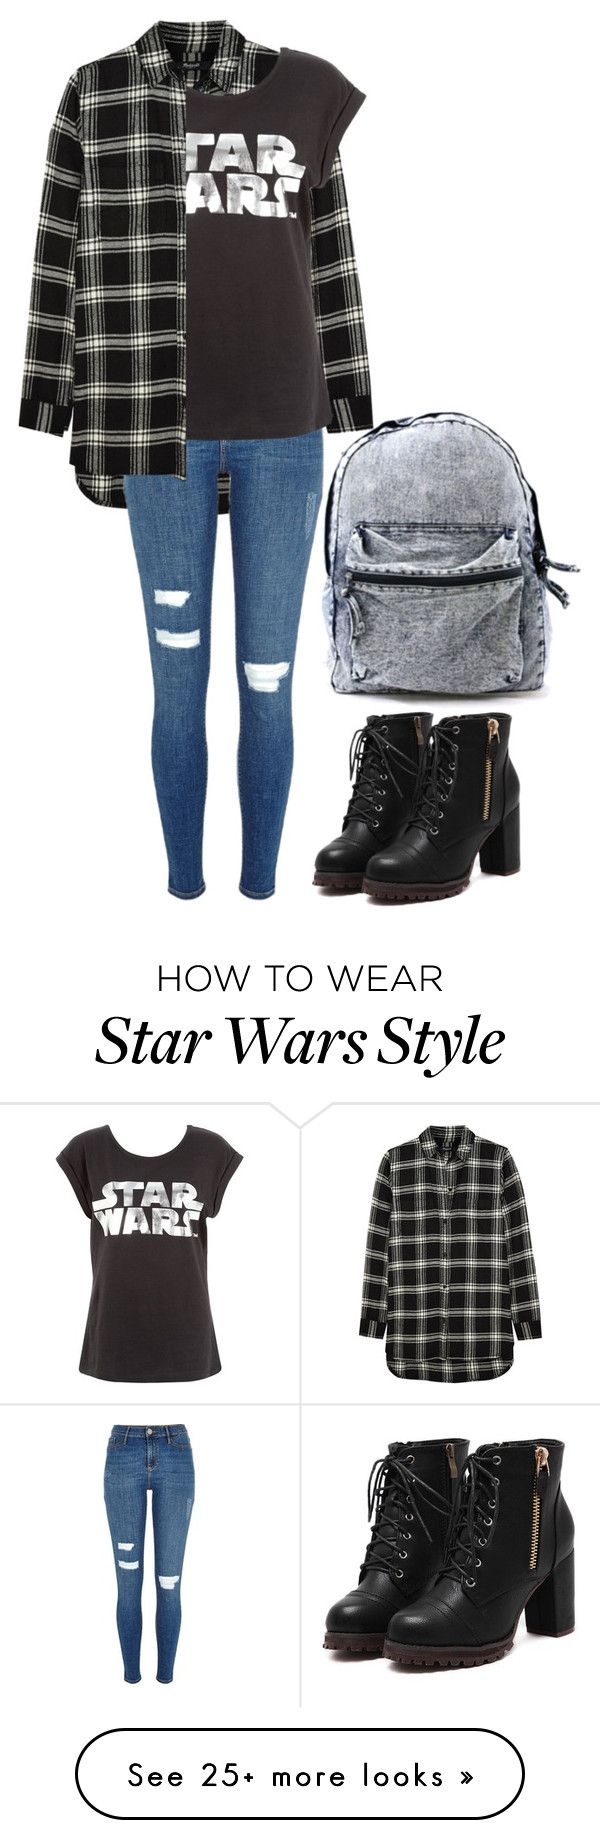 """OOTD"" by kirathelovergirl on Polyvore featuring Madewell and River Island"